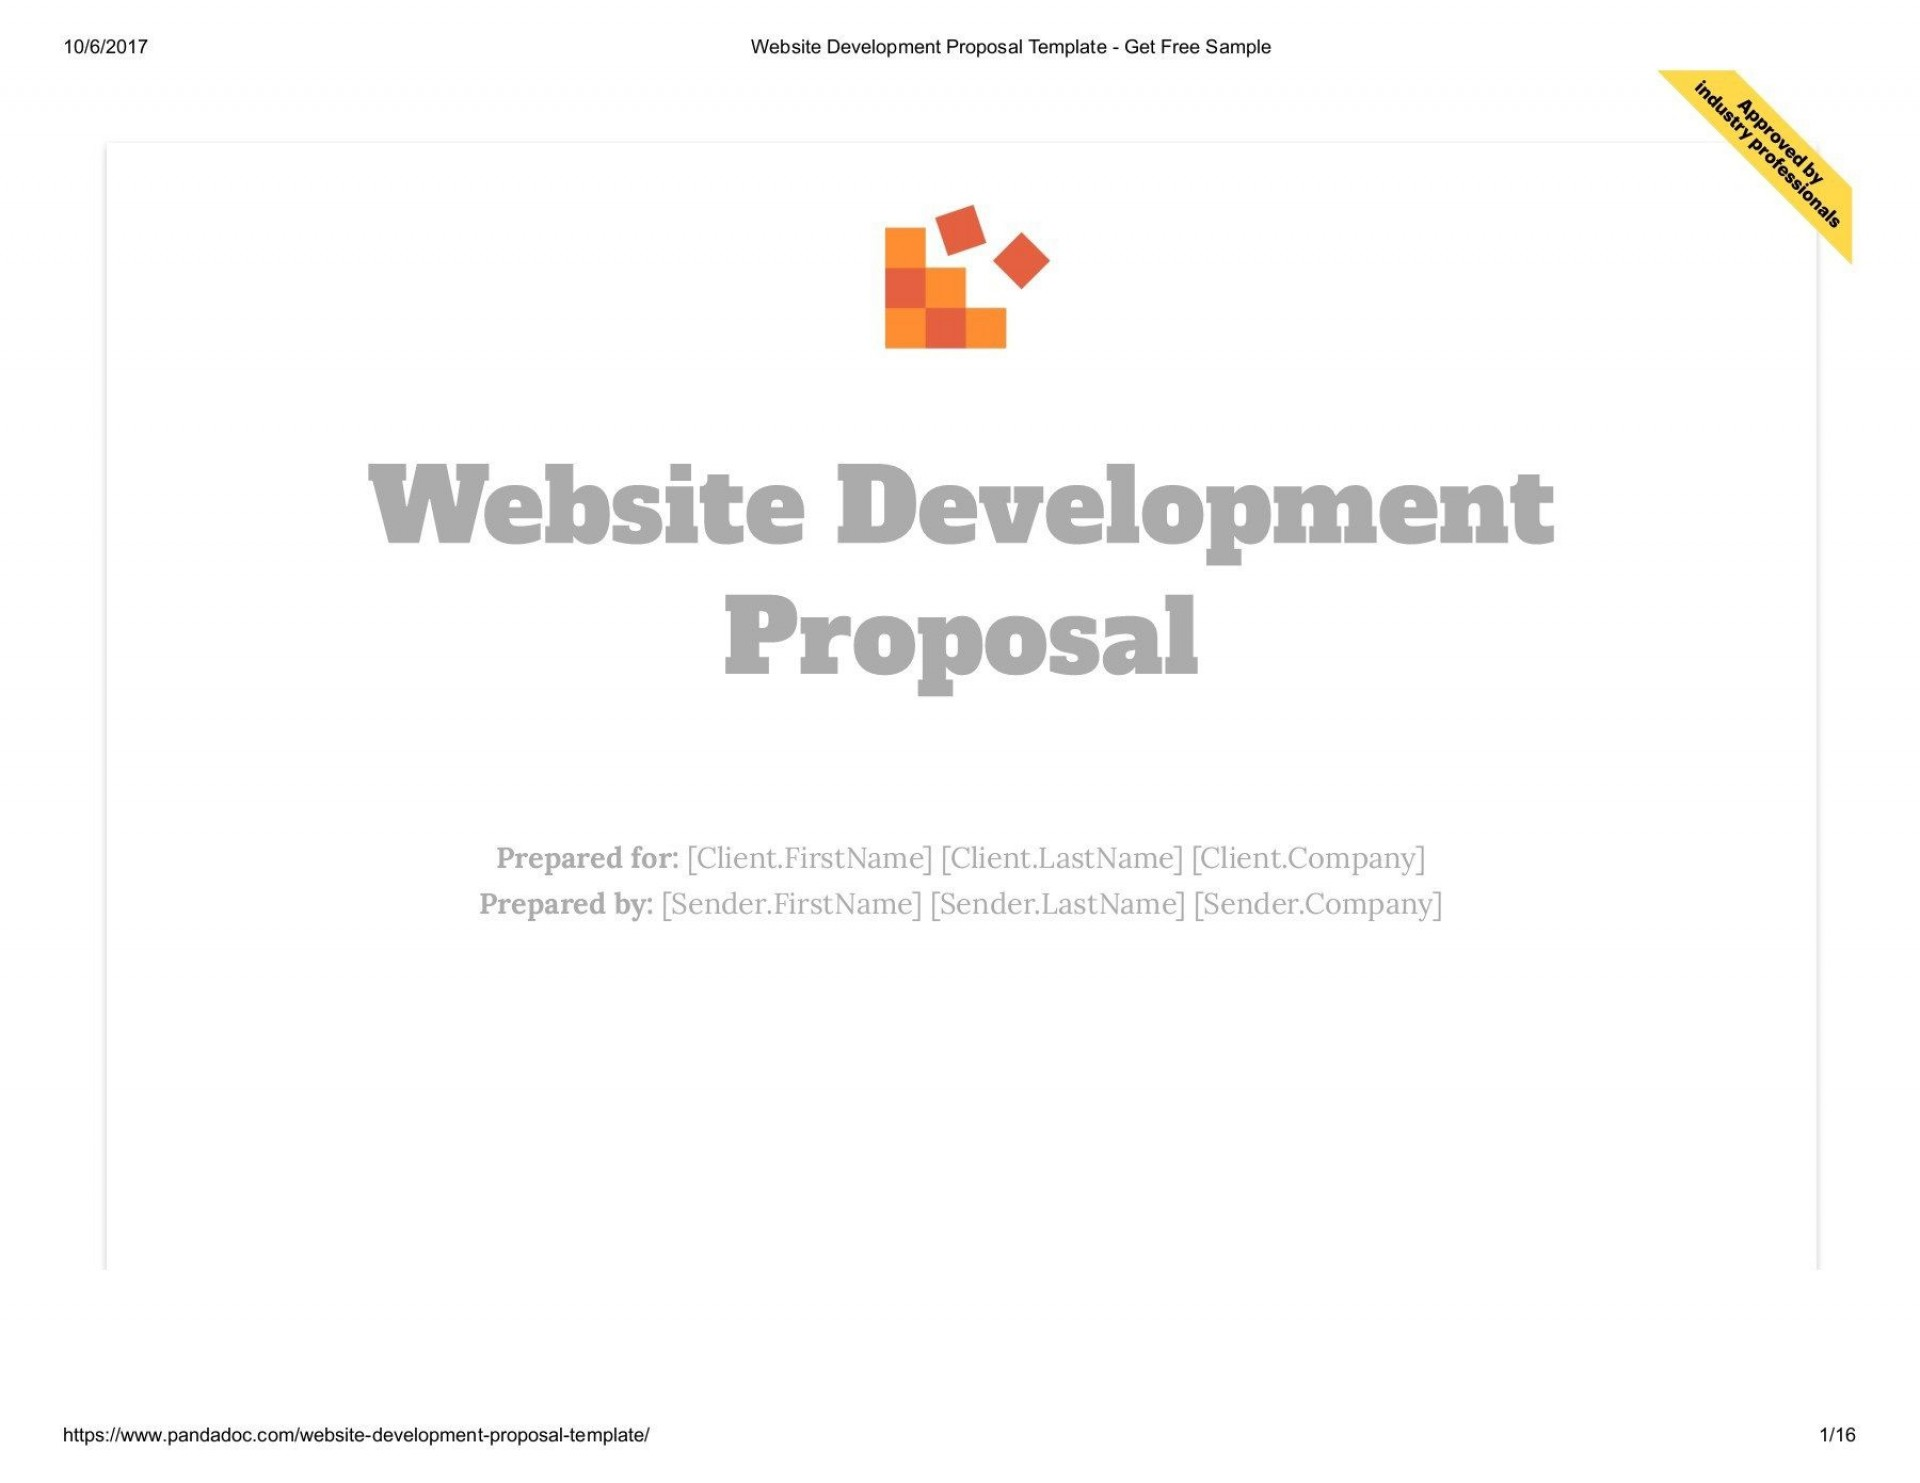 000 Top Website Development Proposal Template Inspiration  Web Free Document Portal1920